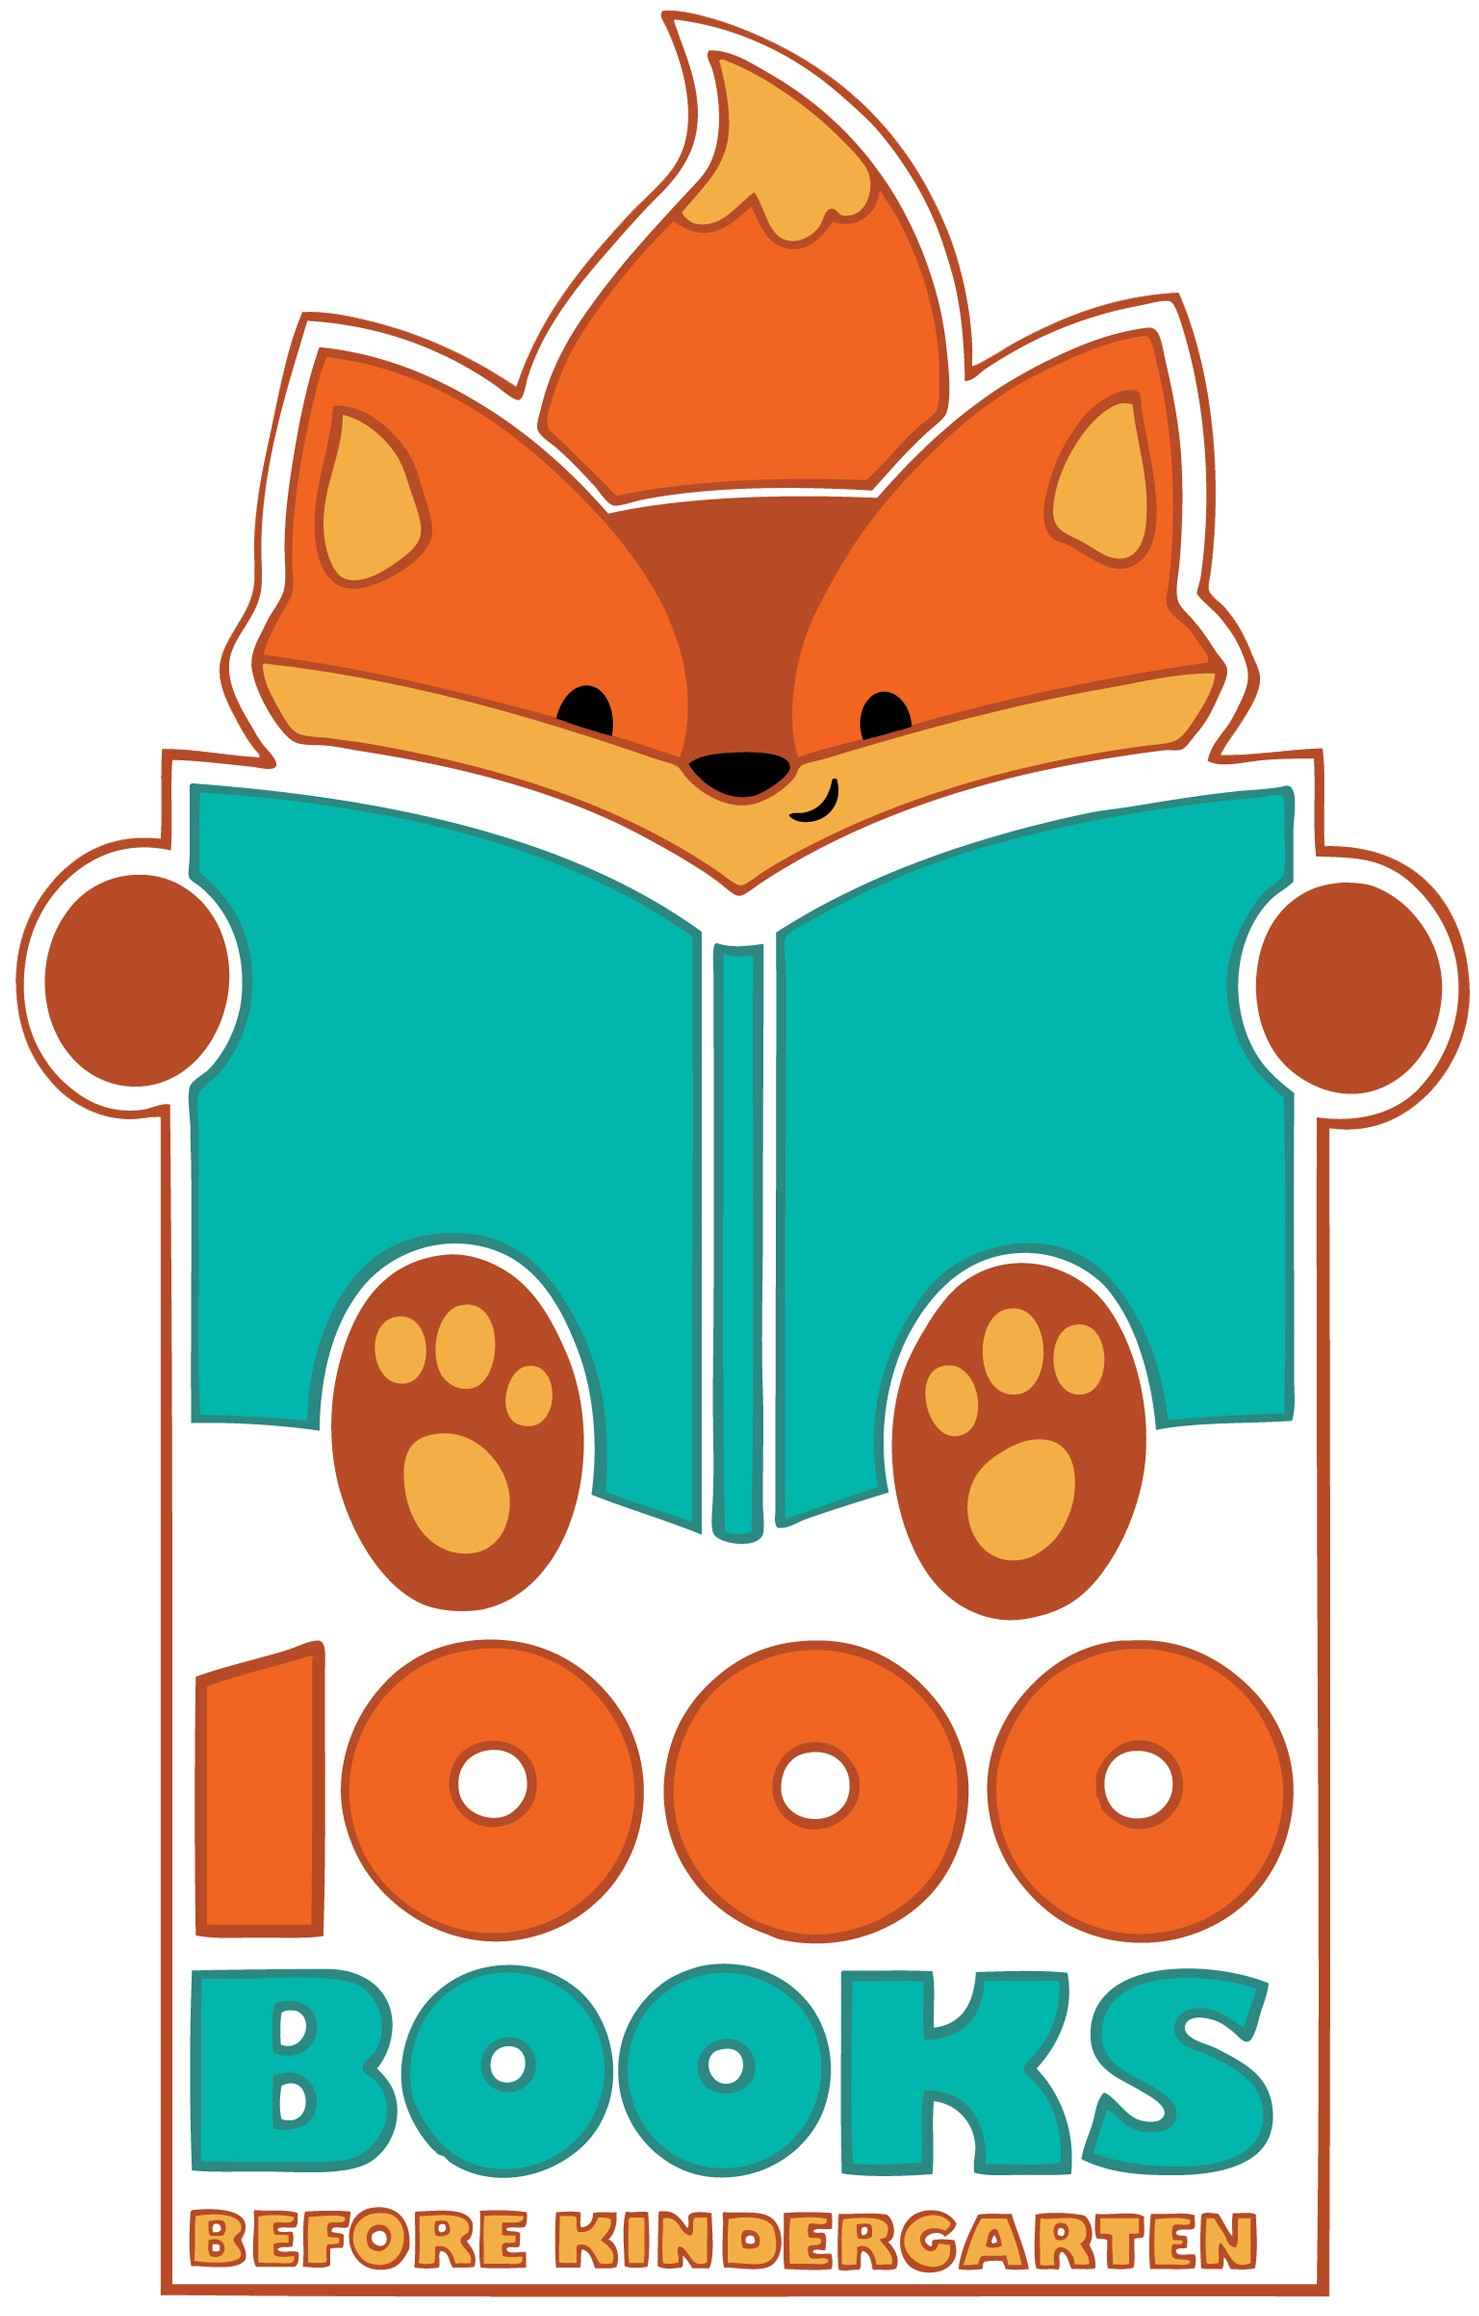 1000 Books Before Kindergarten